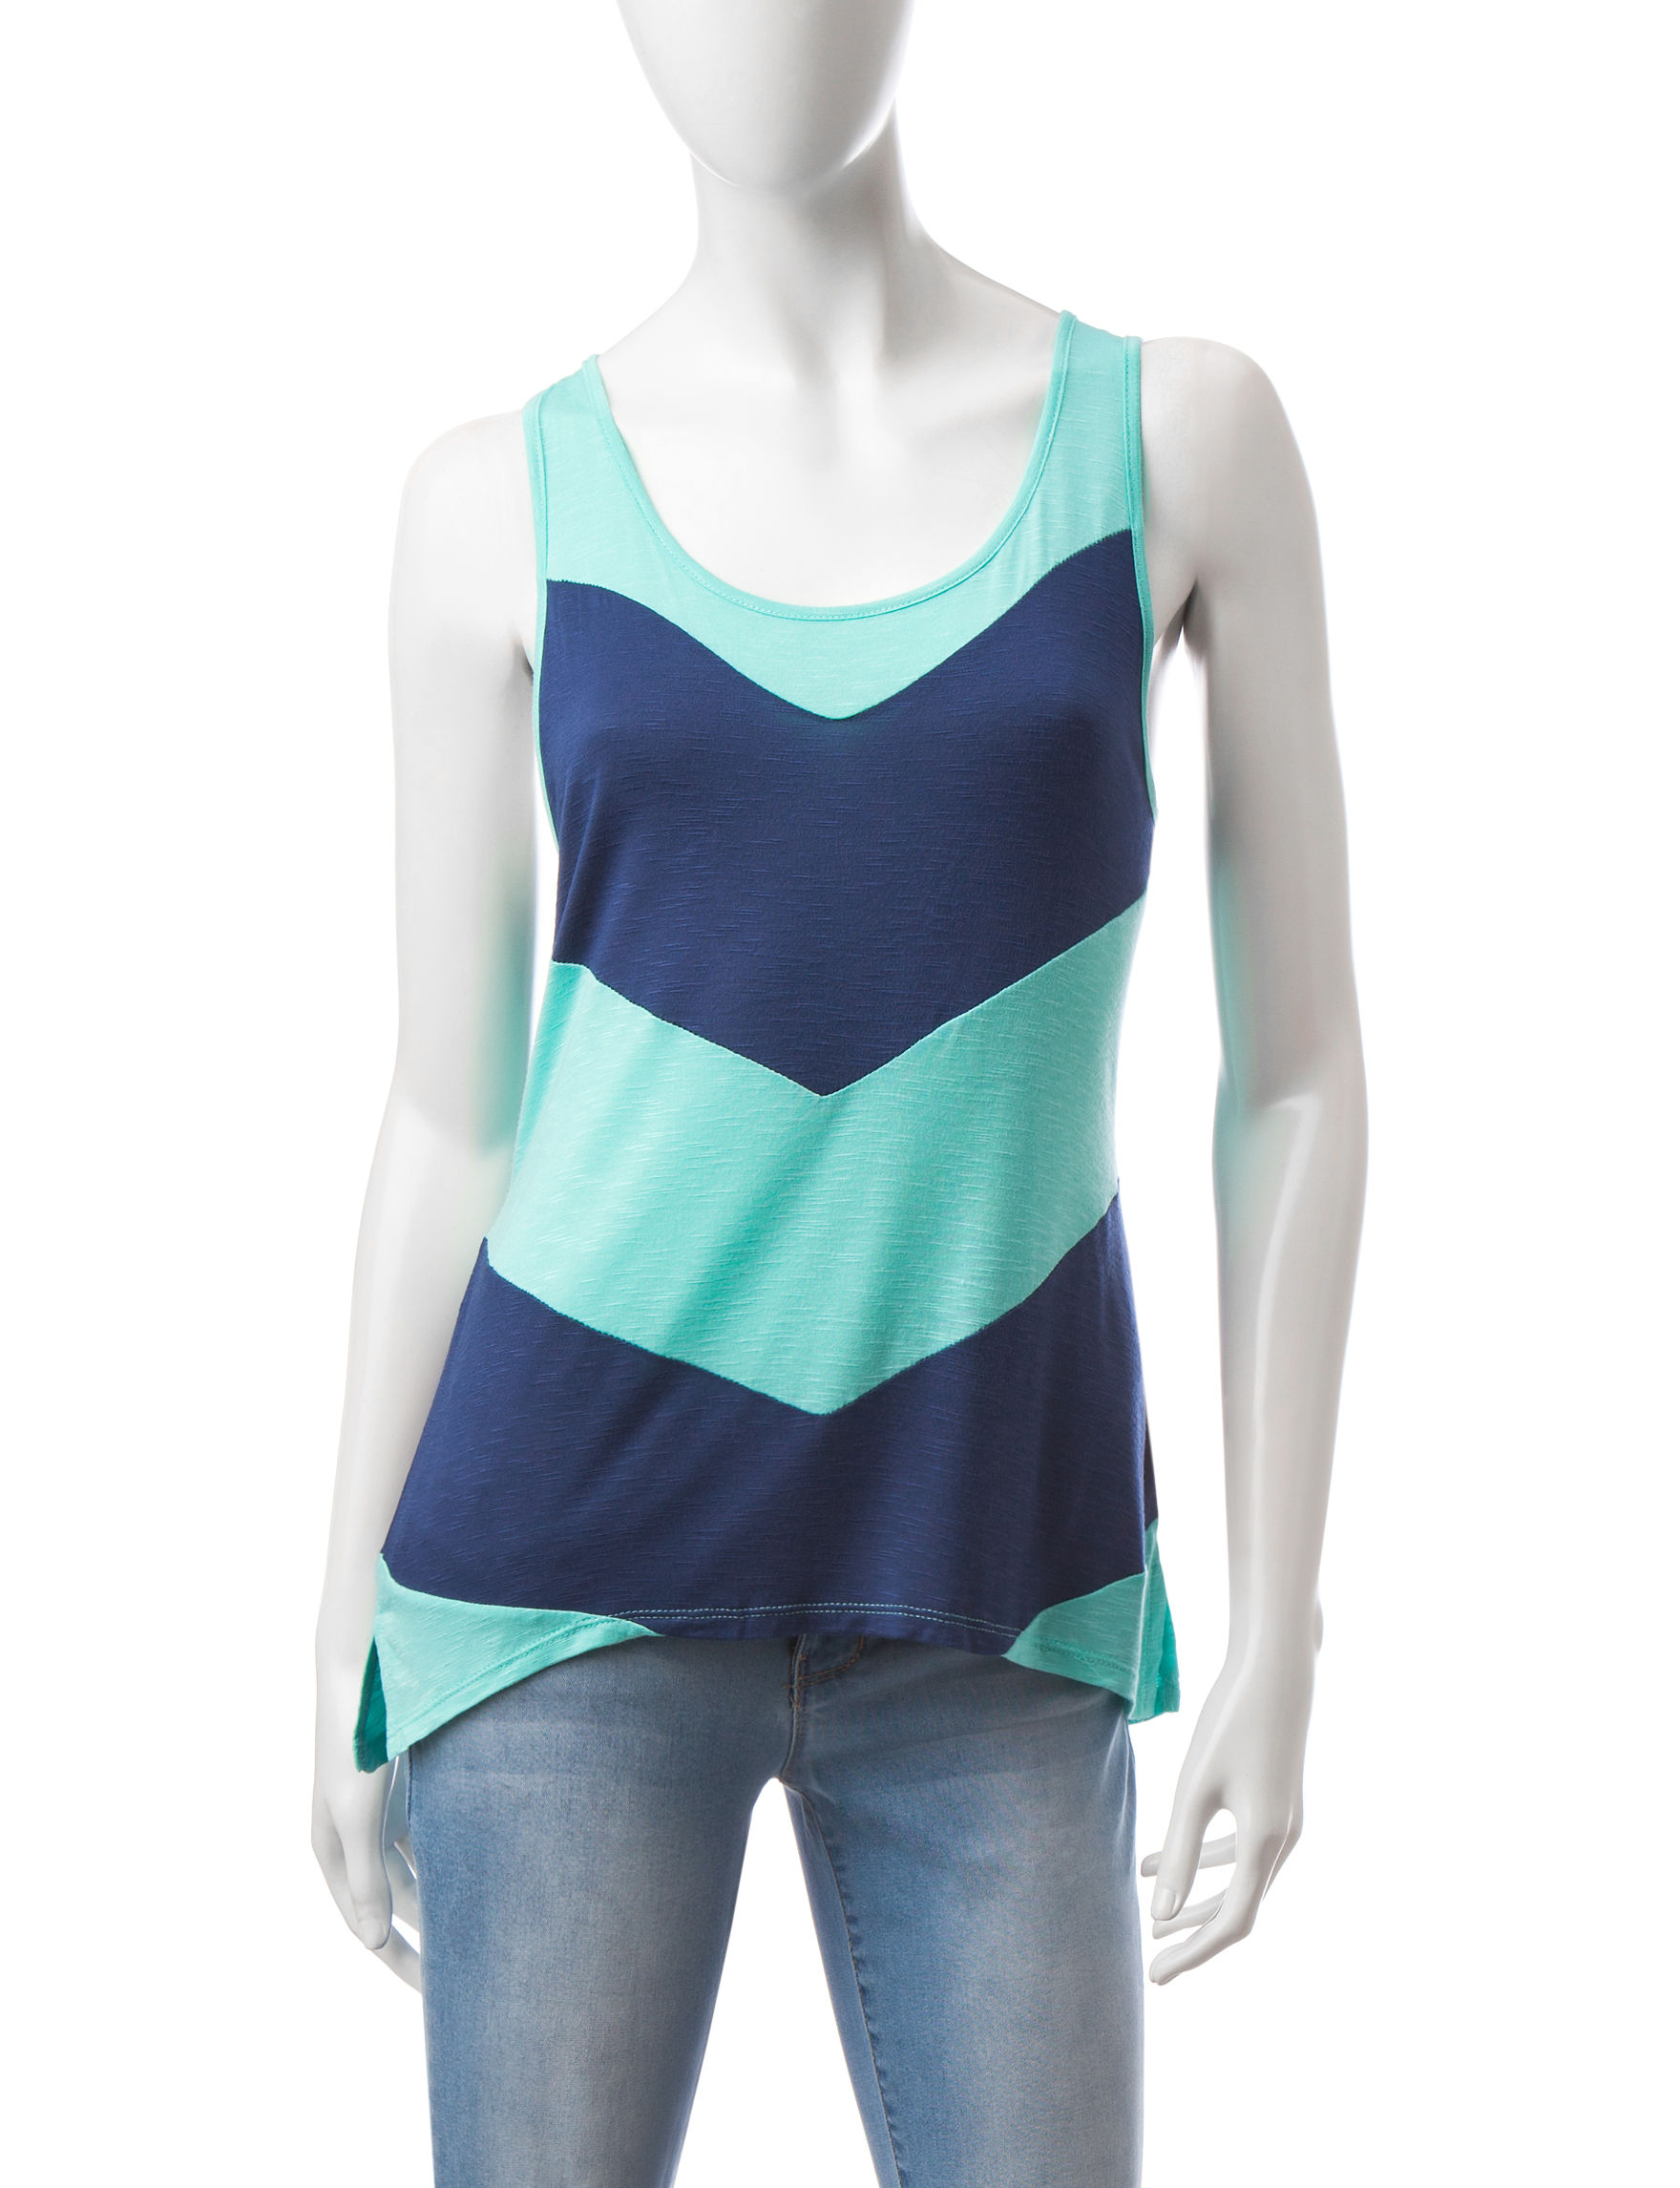 Wishful Park Mint Camisoles & Tanks